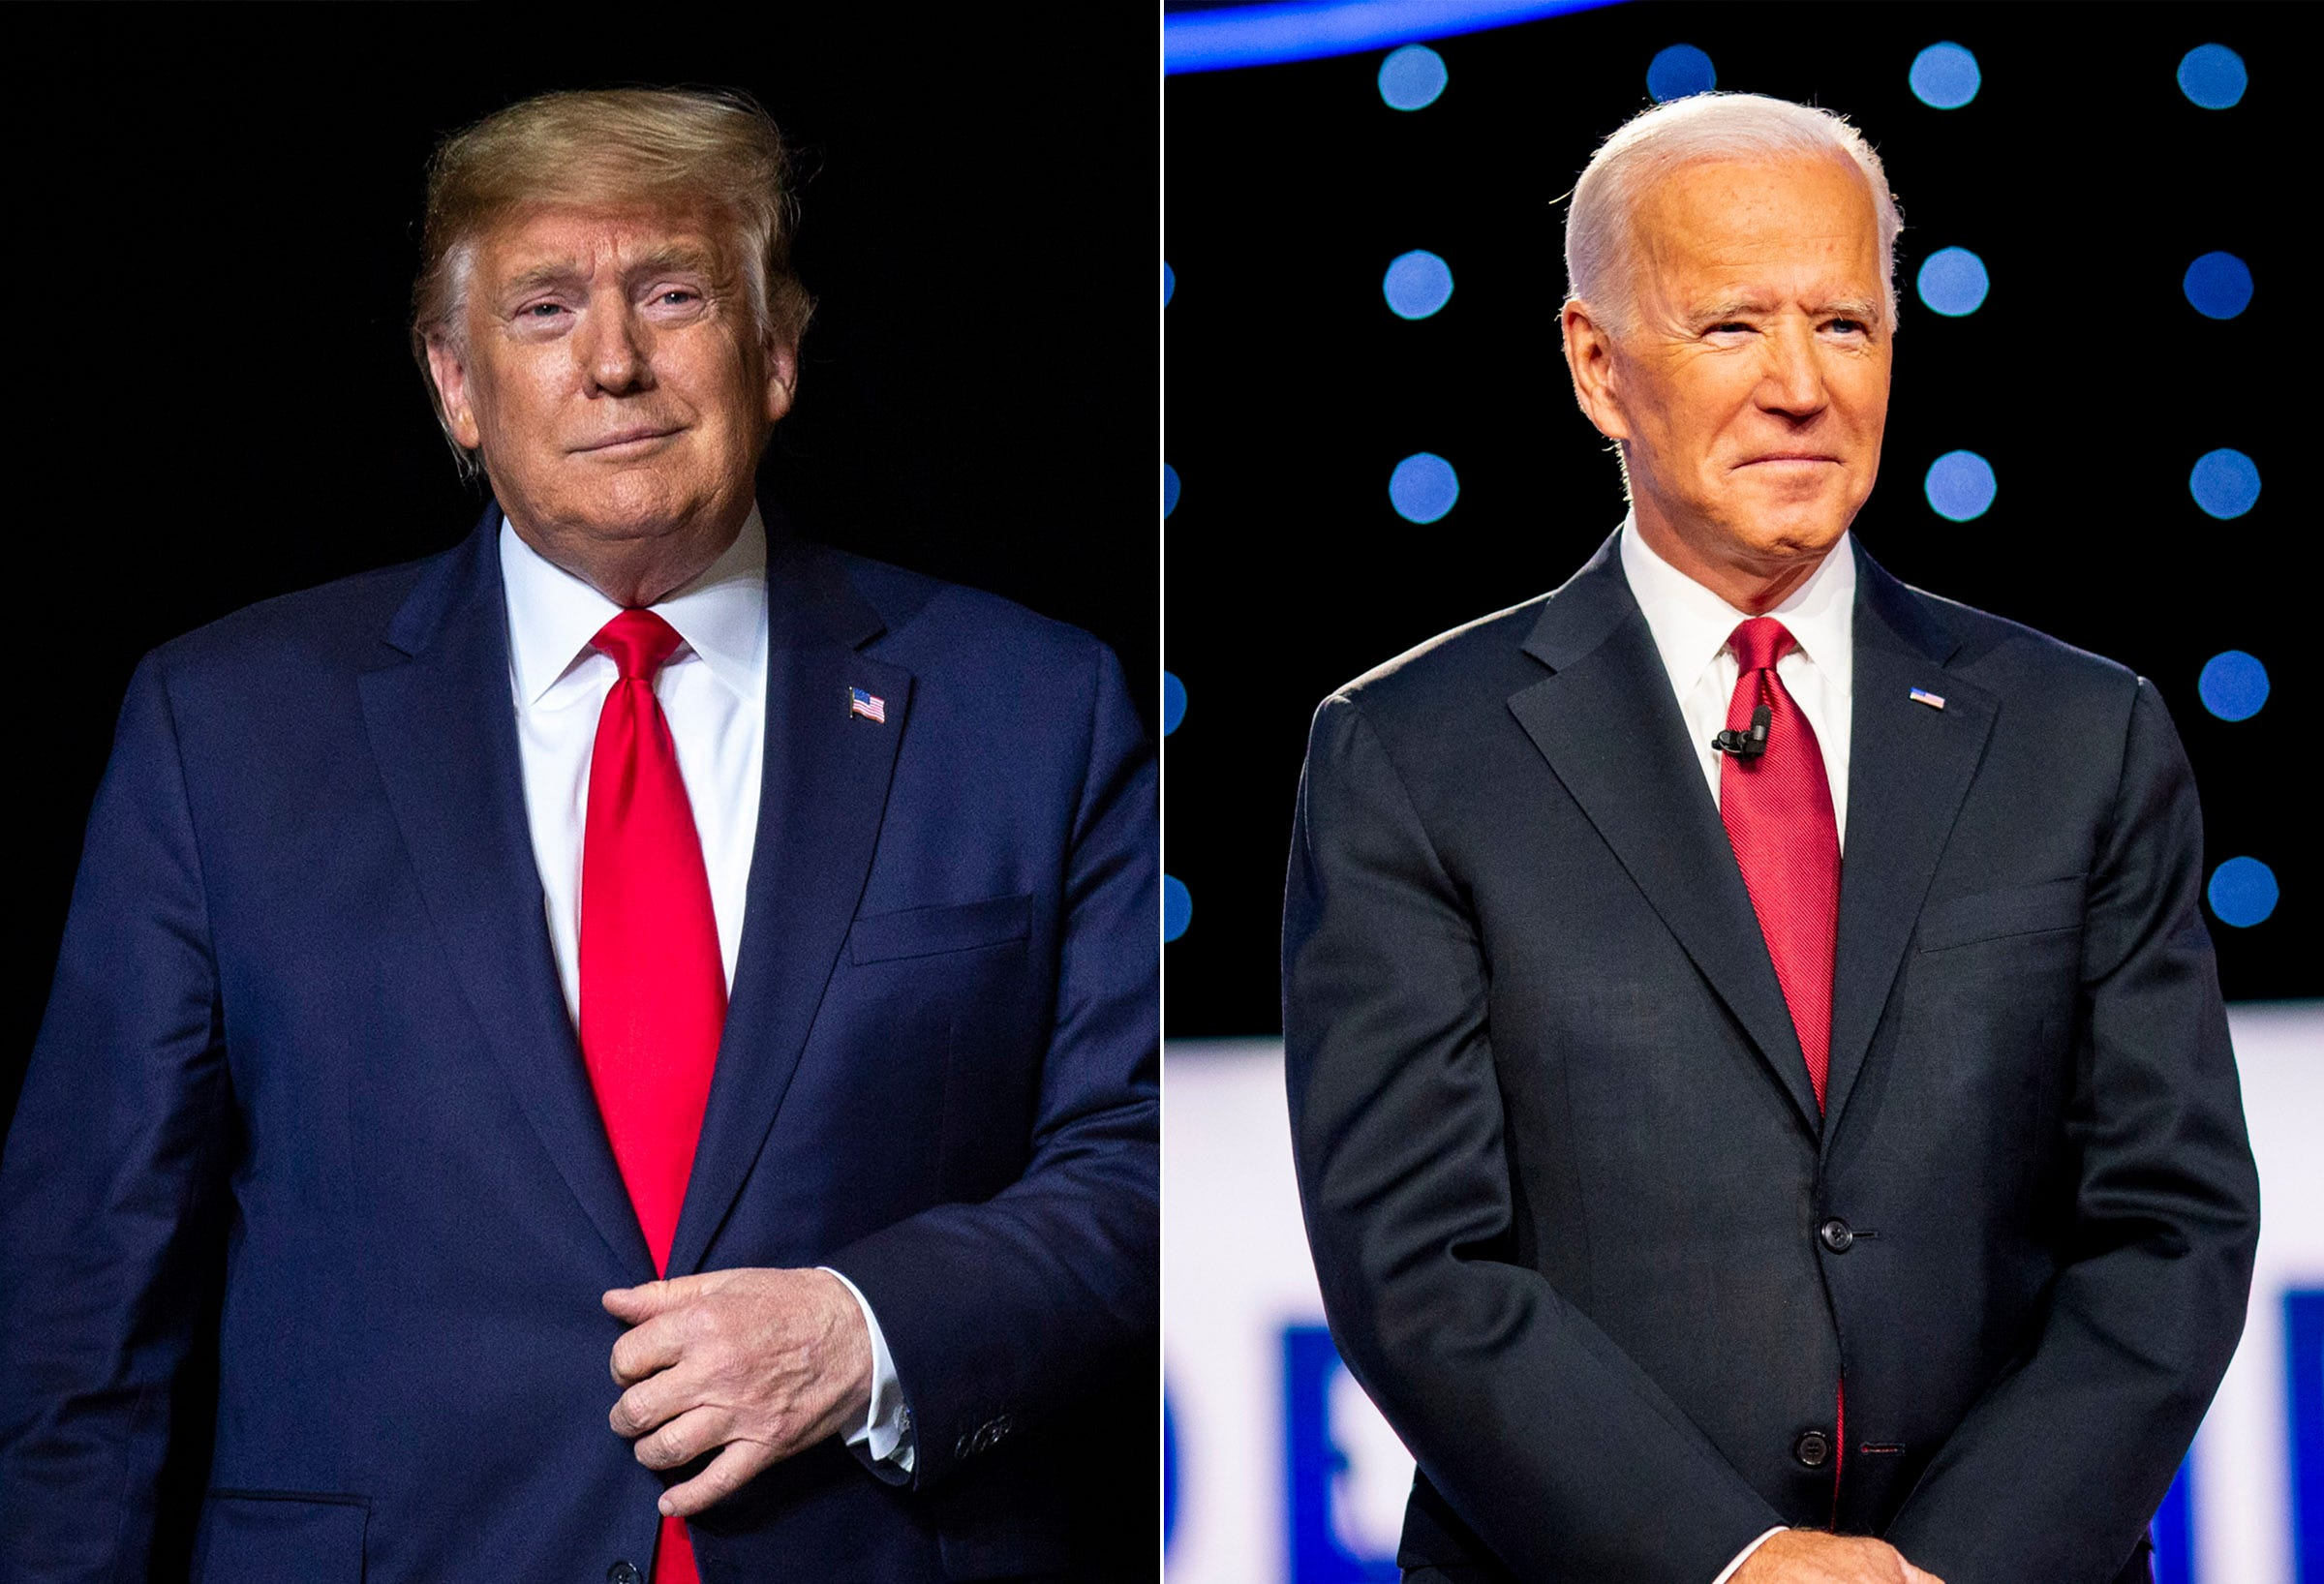 This 'presidential predictor' forecasts a Biden win